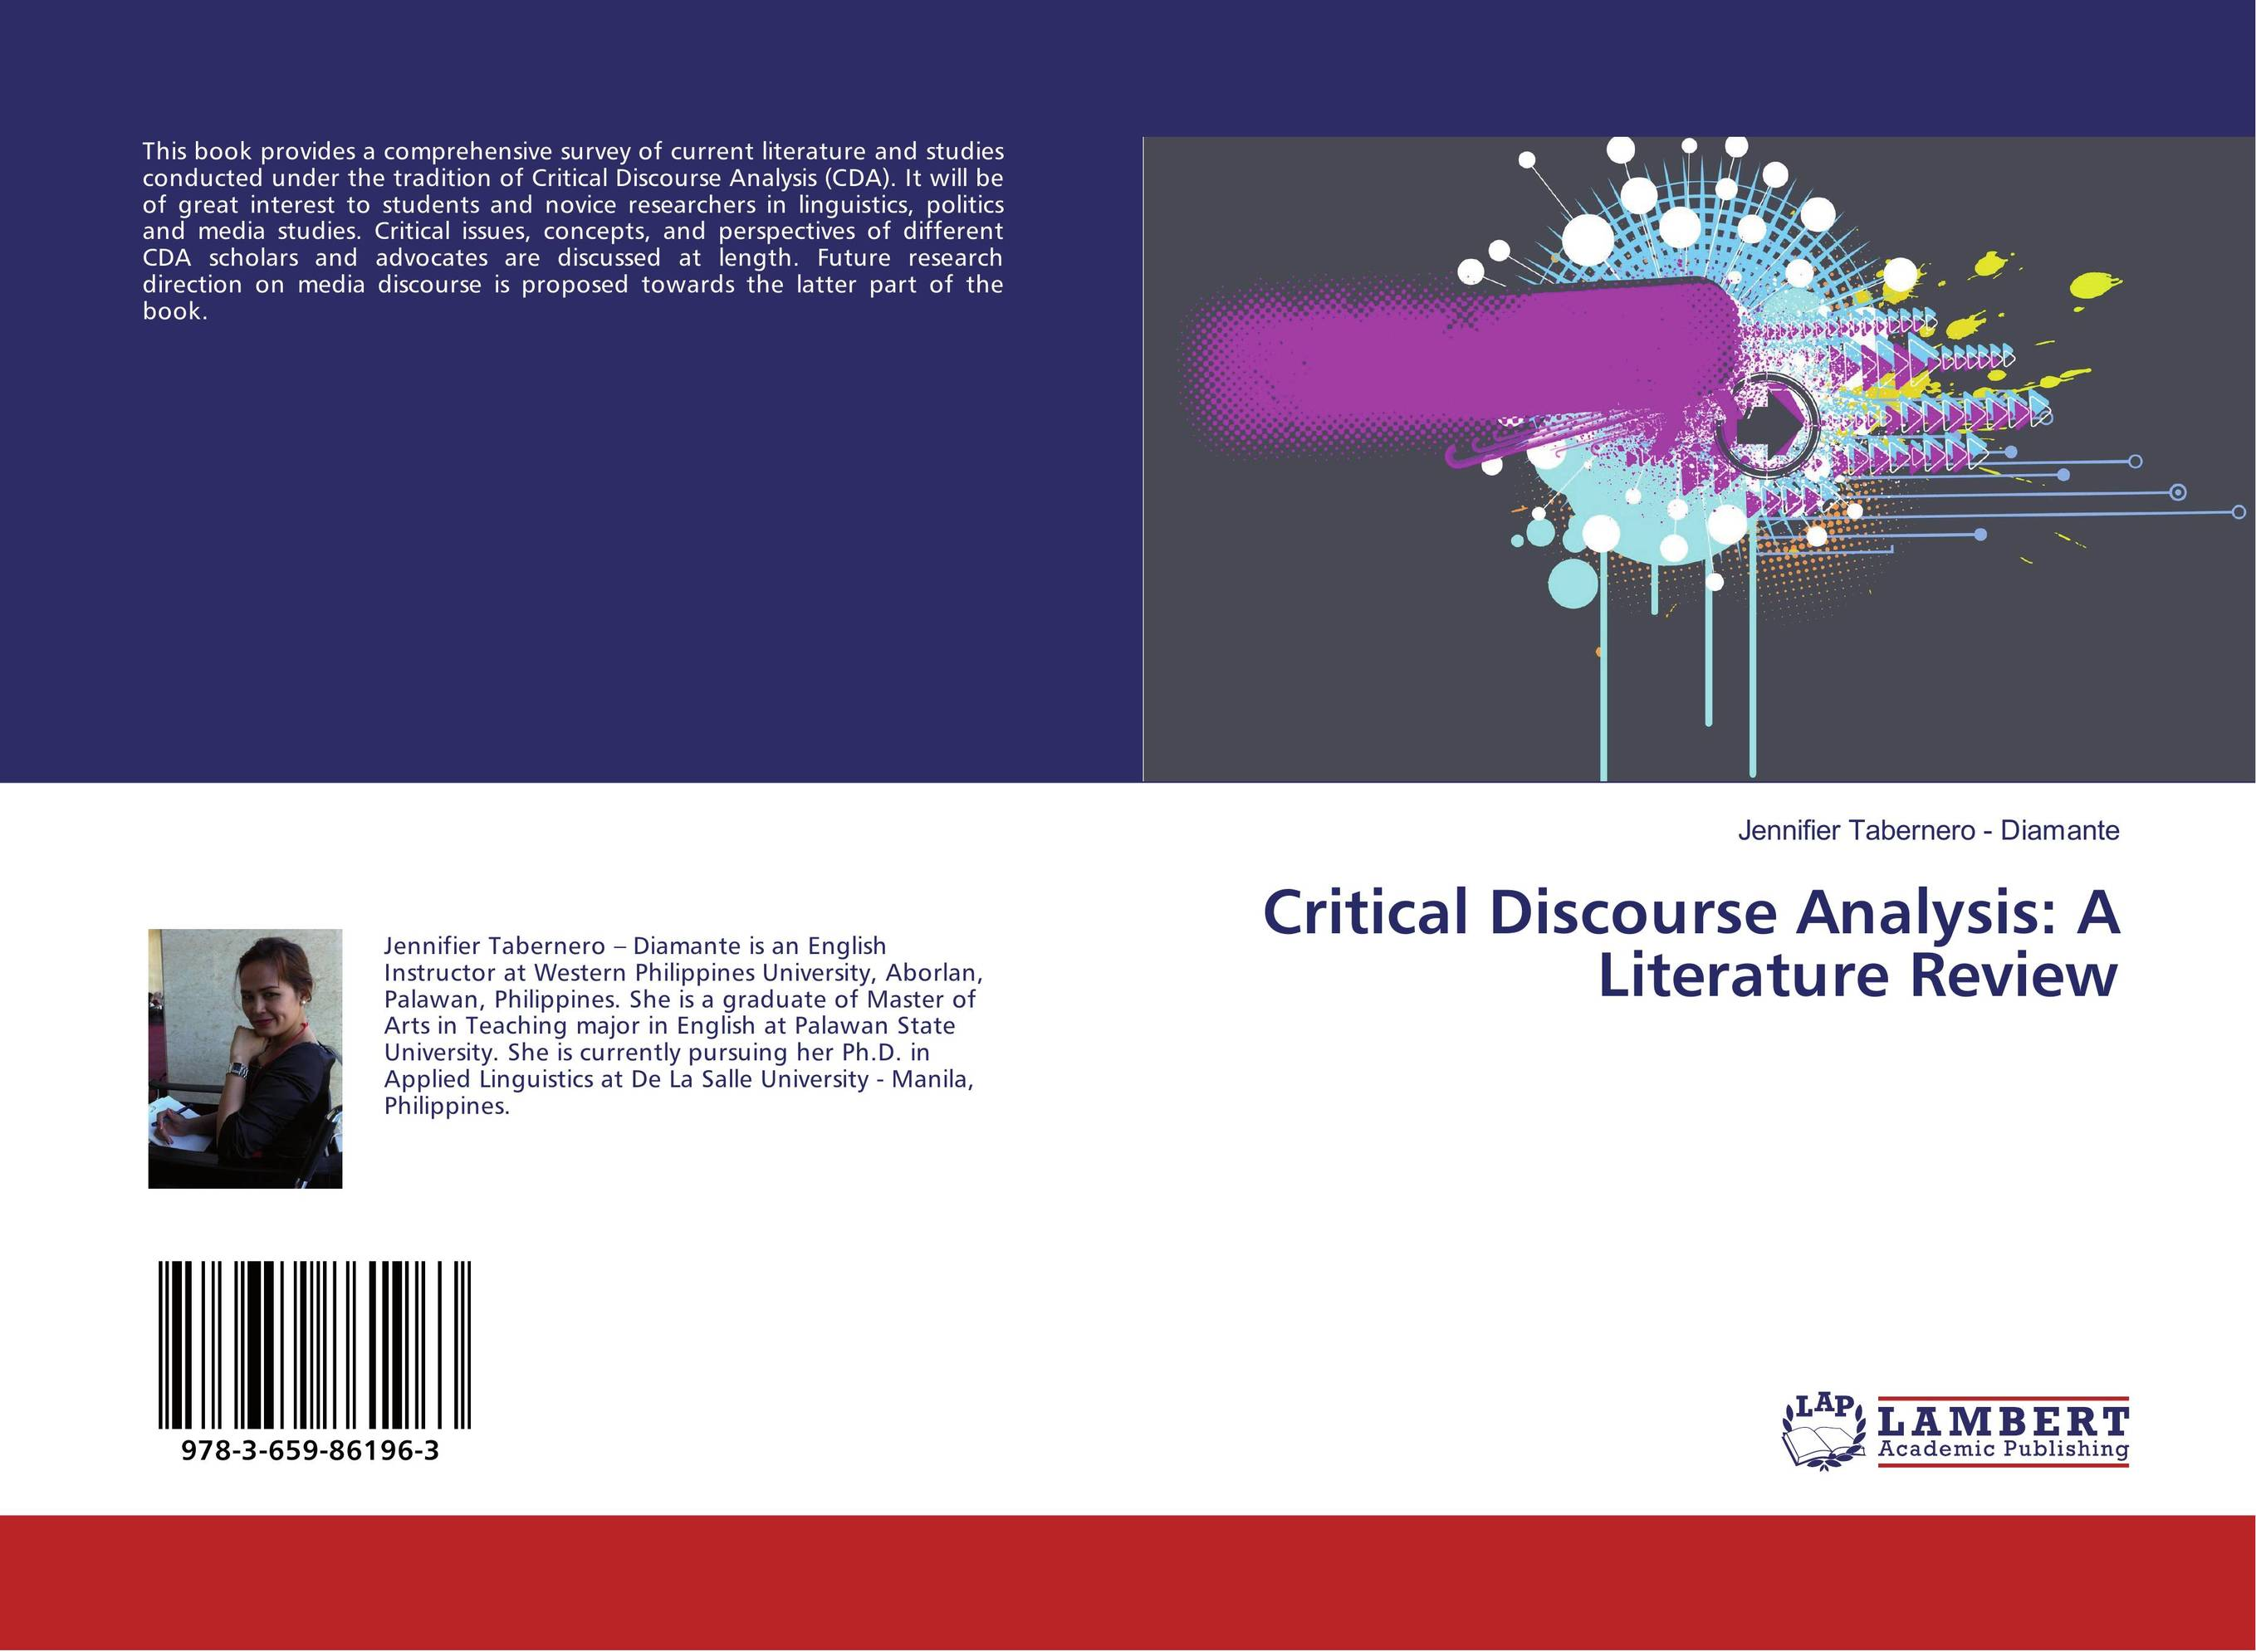 Critical Discourse Analysis: A Literature Review